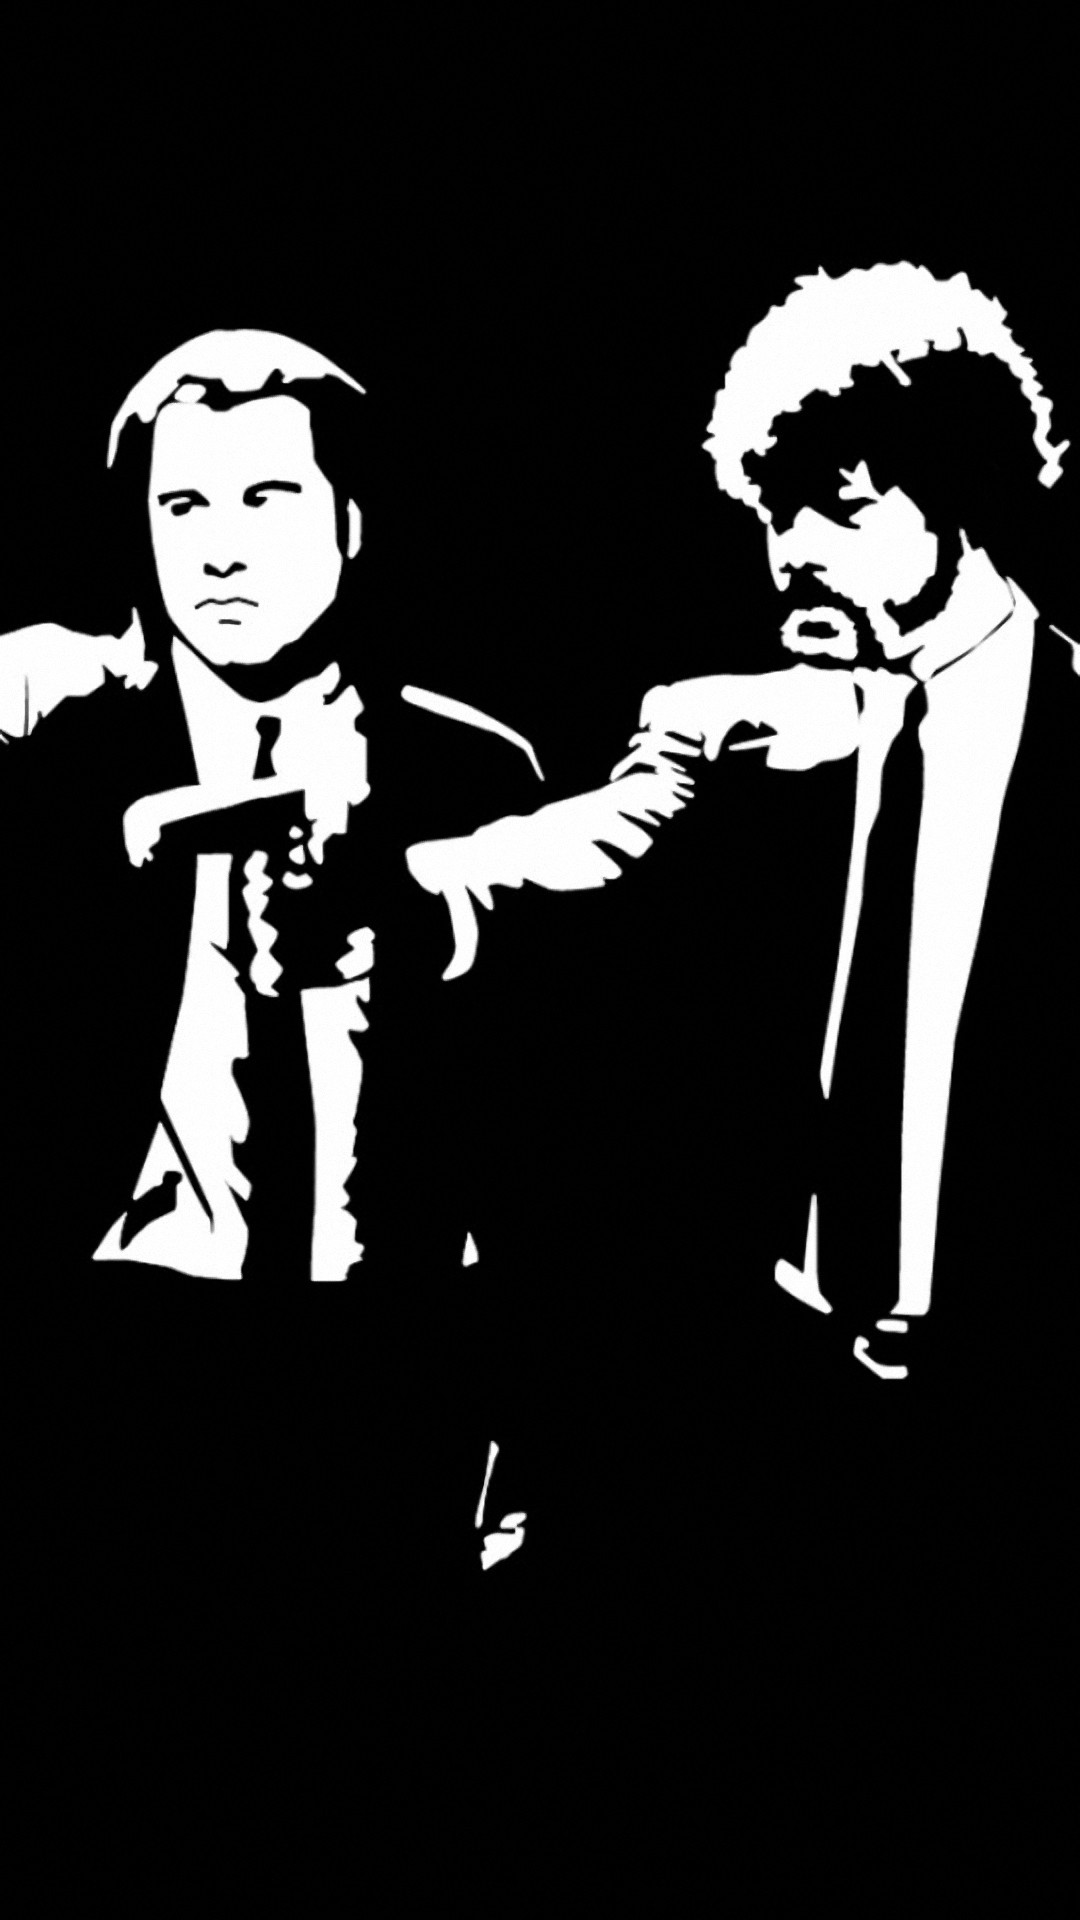 Pulp Fiction Wallpaper Hd Backgrounds Photos Images Pictures Yl Computing